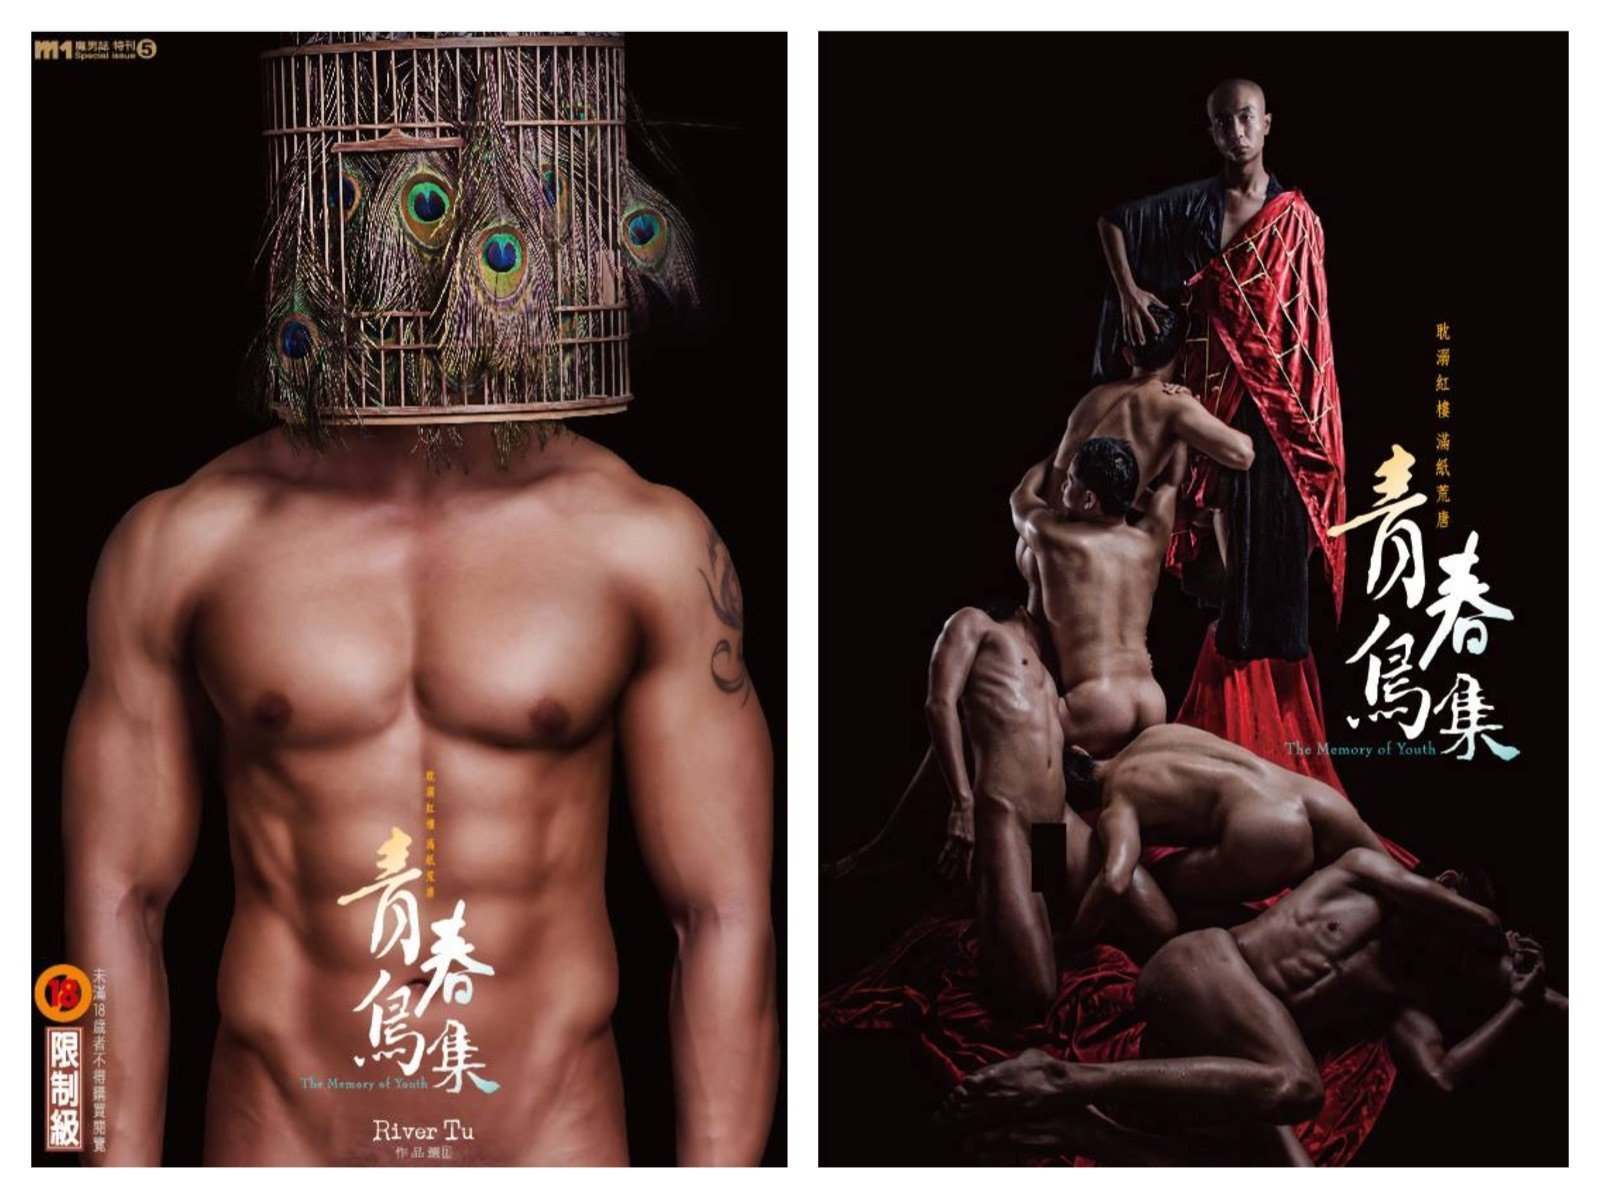 M1- Asian Man photo book (Full Nudity, Adult Only, +18) (Special Issue 2016) pdf